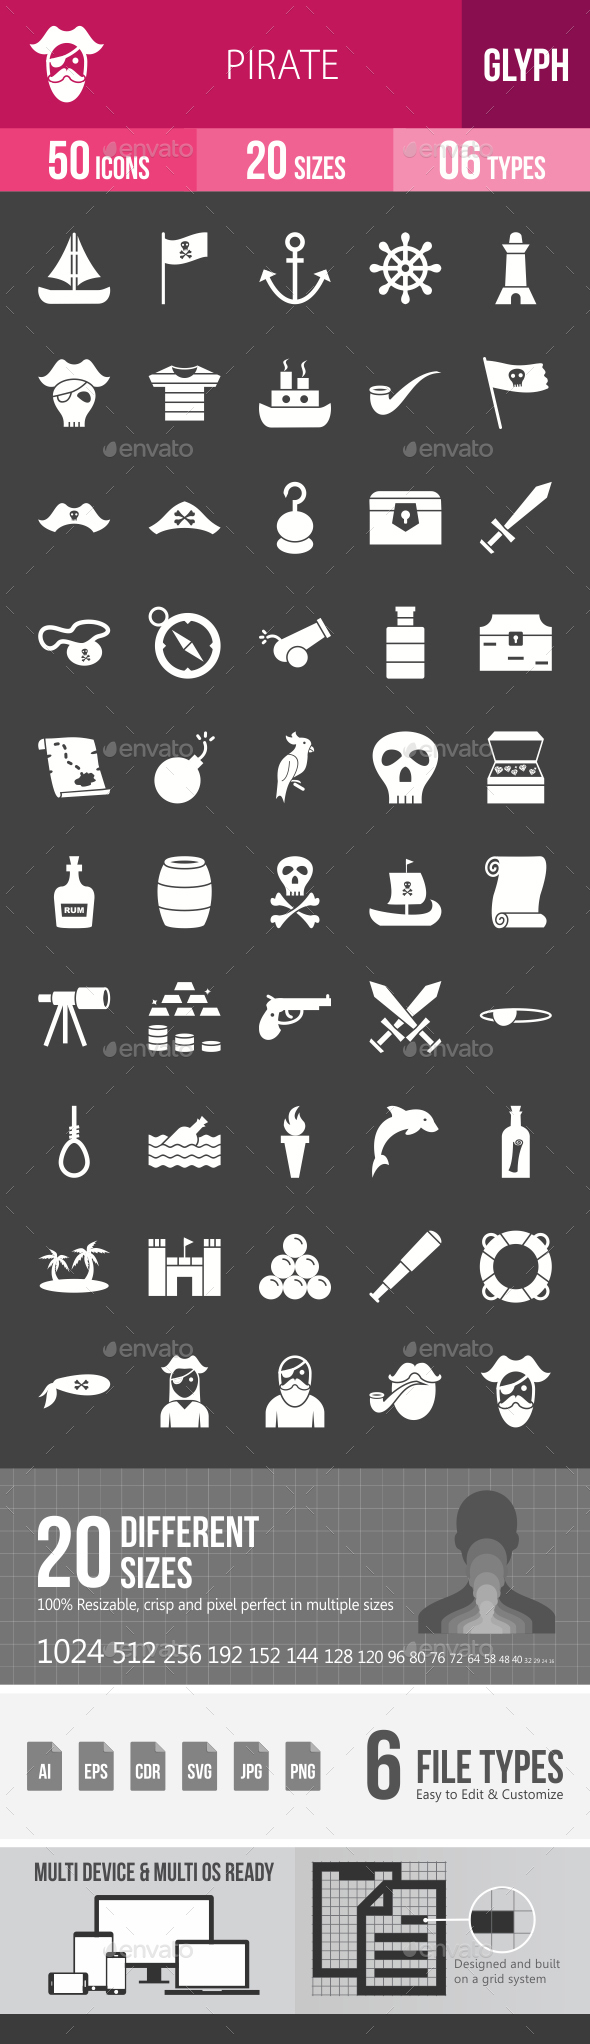 Pirate Glyph Inverted Icons - Icons